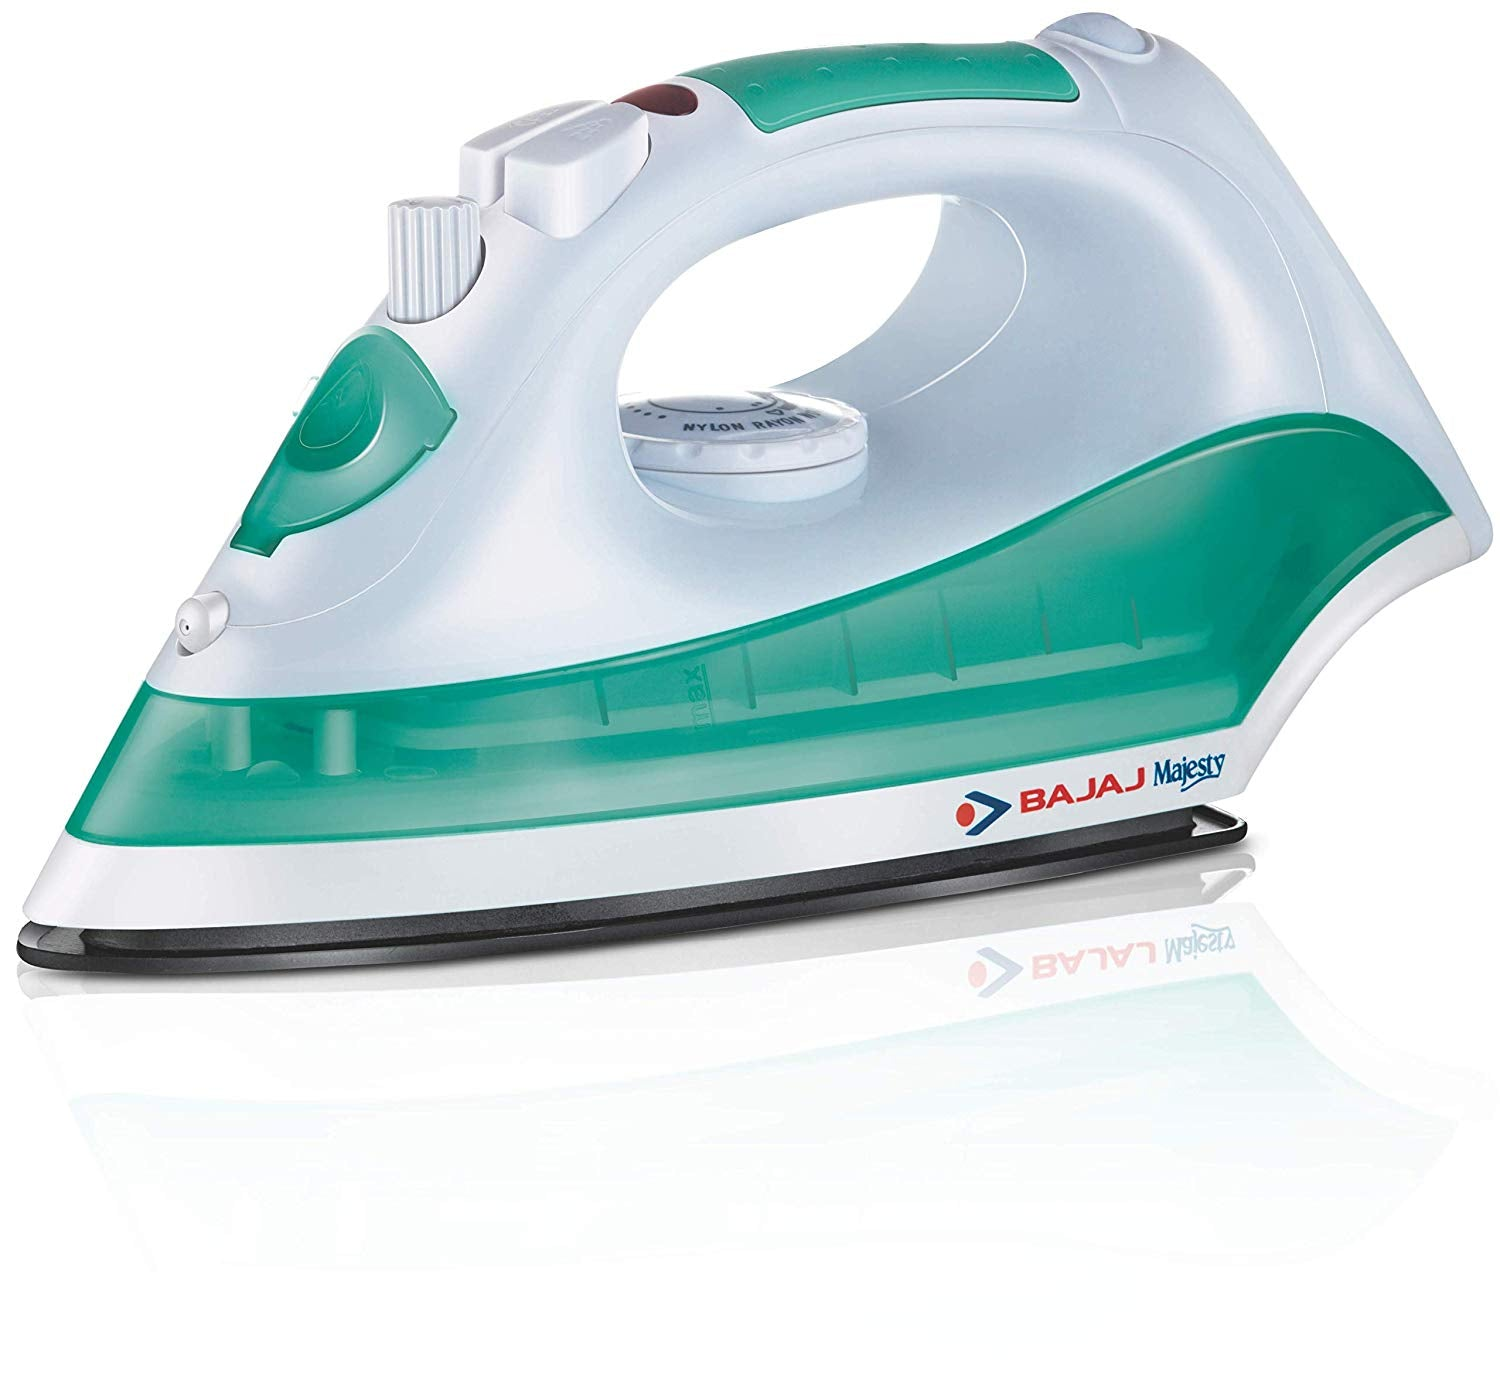 Bajaj Majesty Mx8 1200 Watt Steam Iron Green Whiteget best offers deals free and coupons online at buythevalue.in